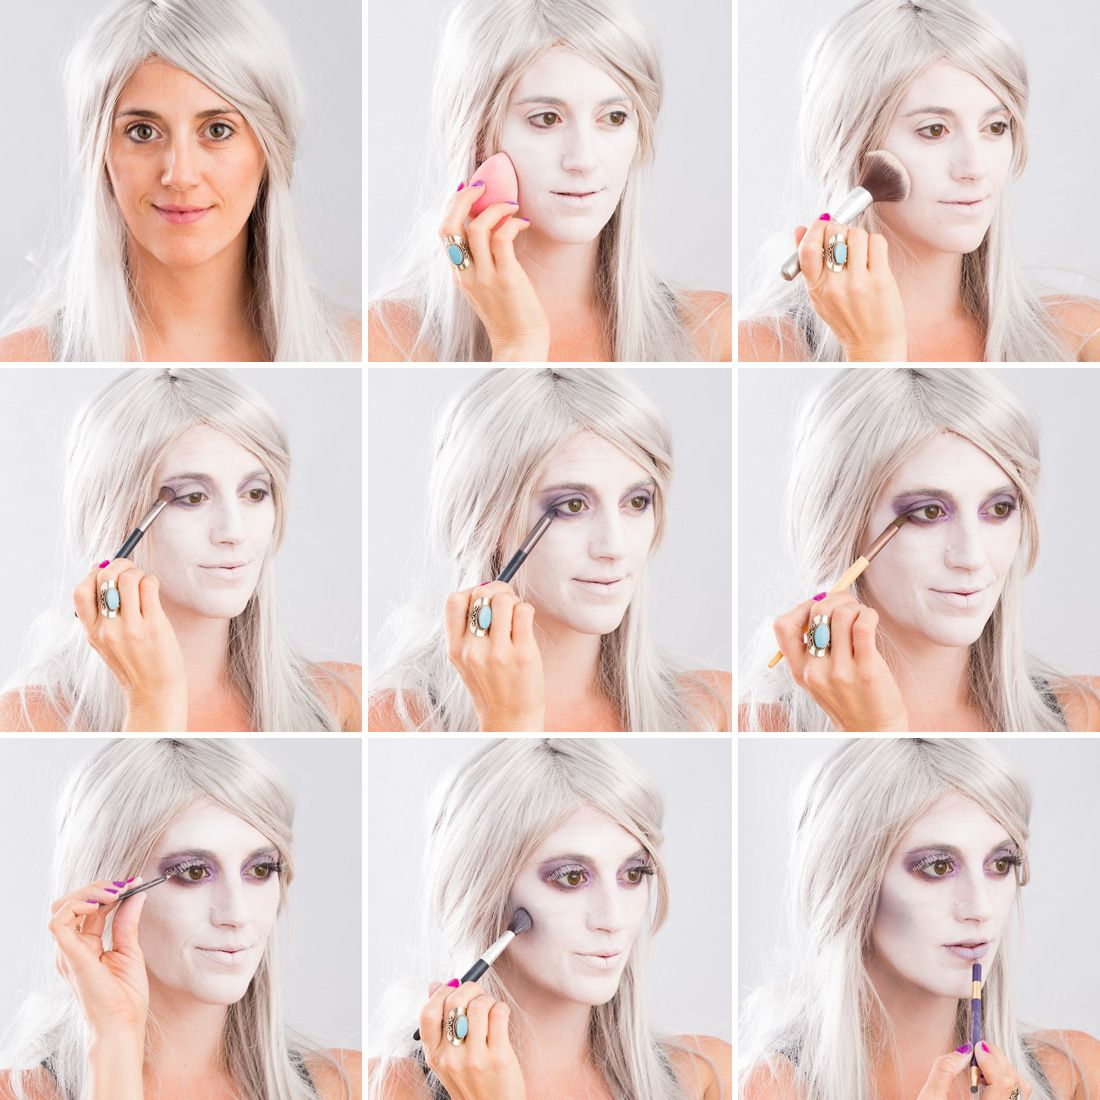 Bookmark this makeup tutorial to perfect your Halloween ghost